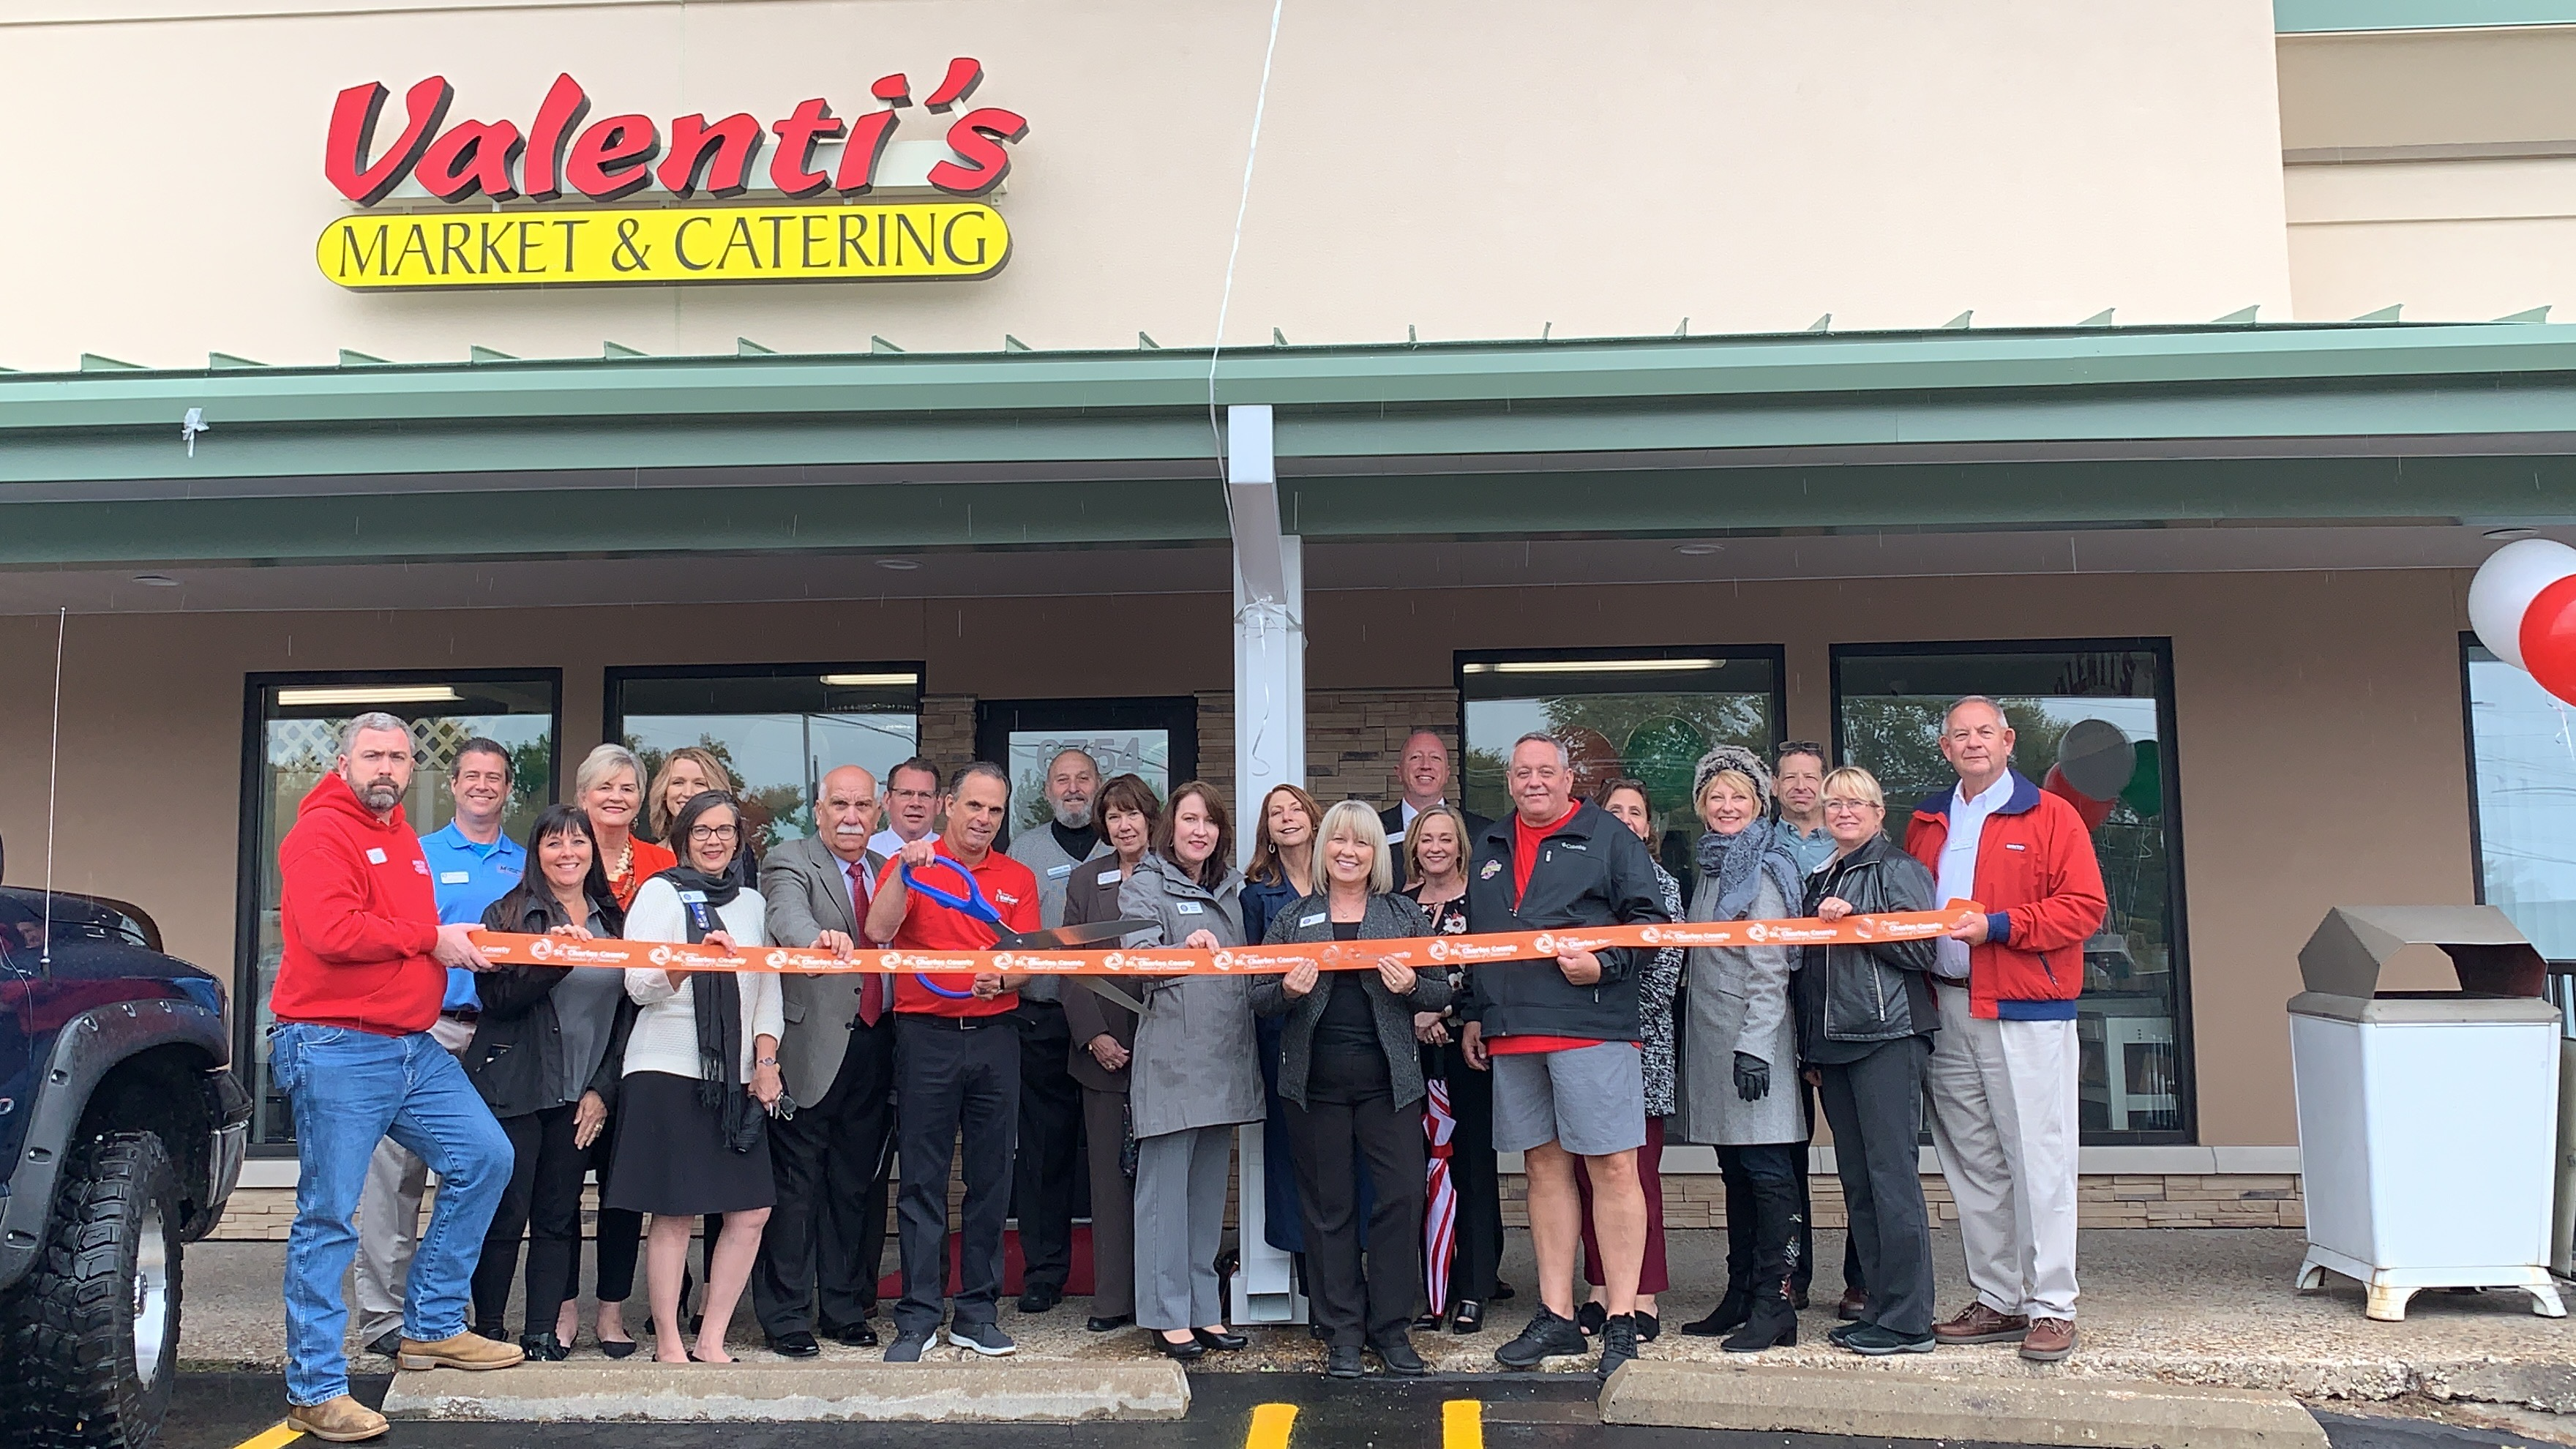 Image for Valenti's Market, Catering & Deli Celebrates  Remodel with Ribbon Cutting